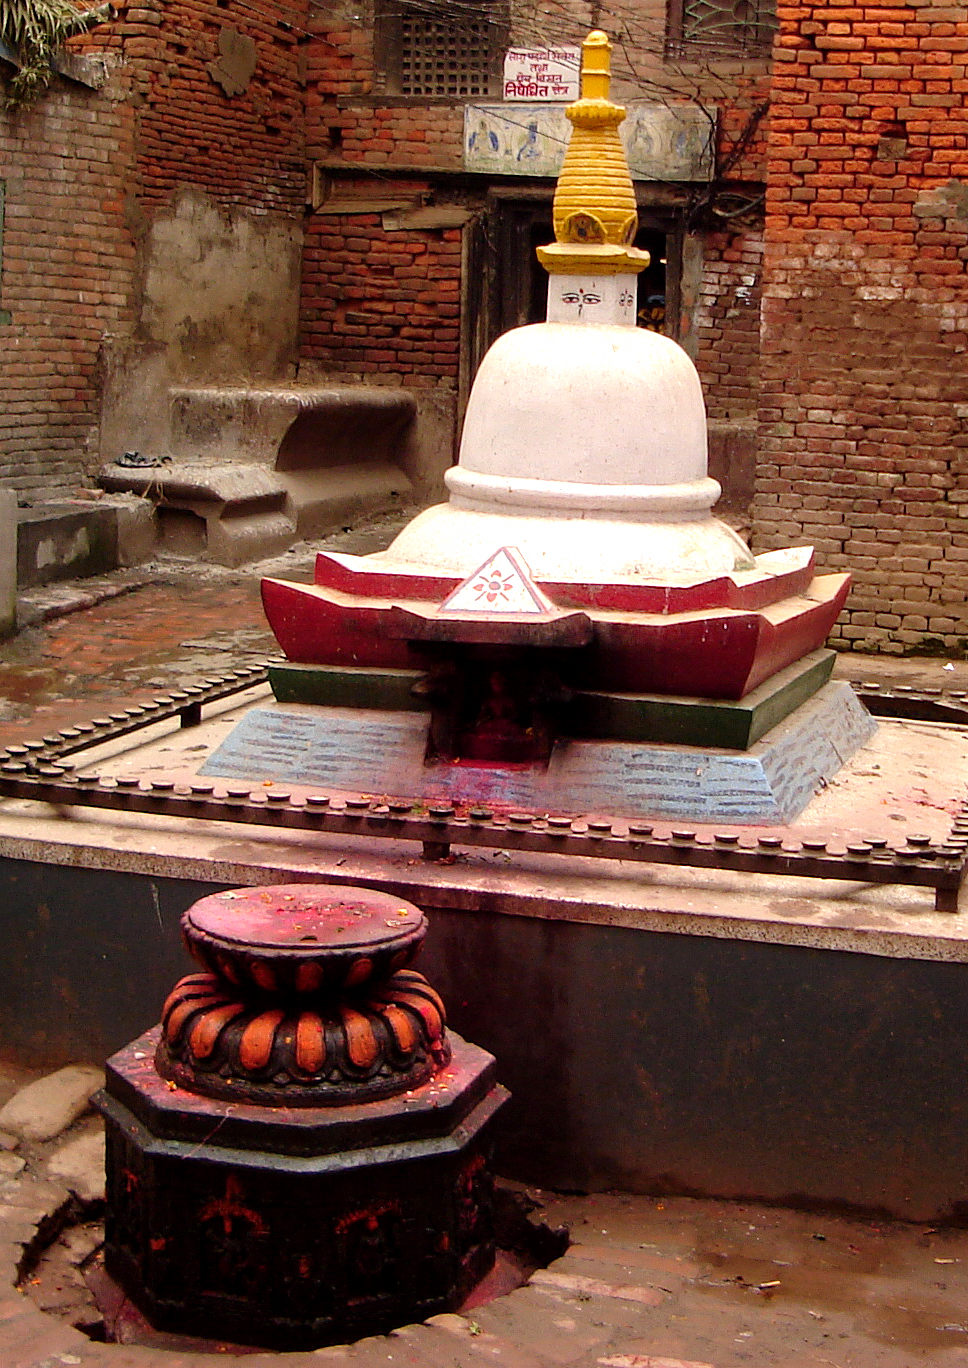 RED TIKA POWDER ADORNS THIS SMALL KATHMANDU NEIGHBORHOOD STUPA